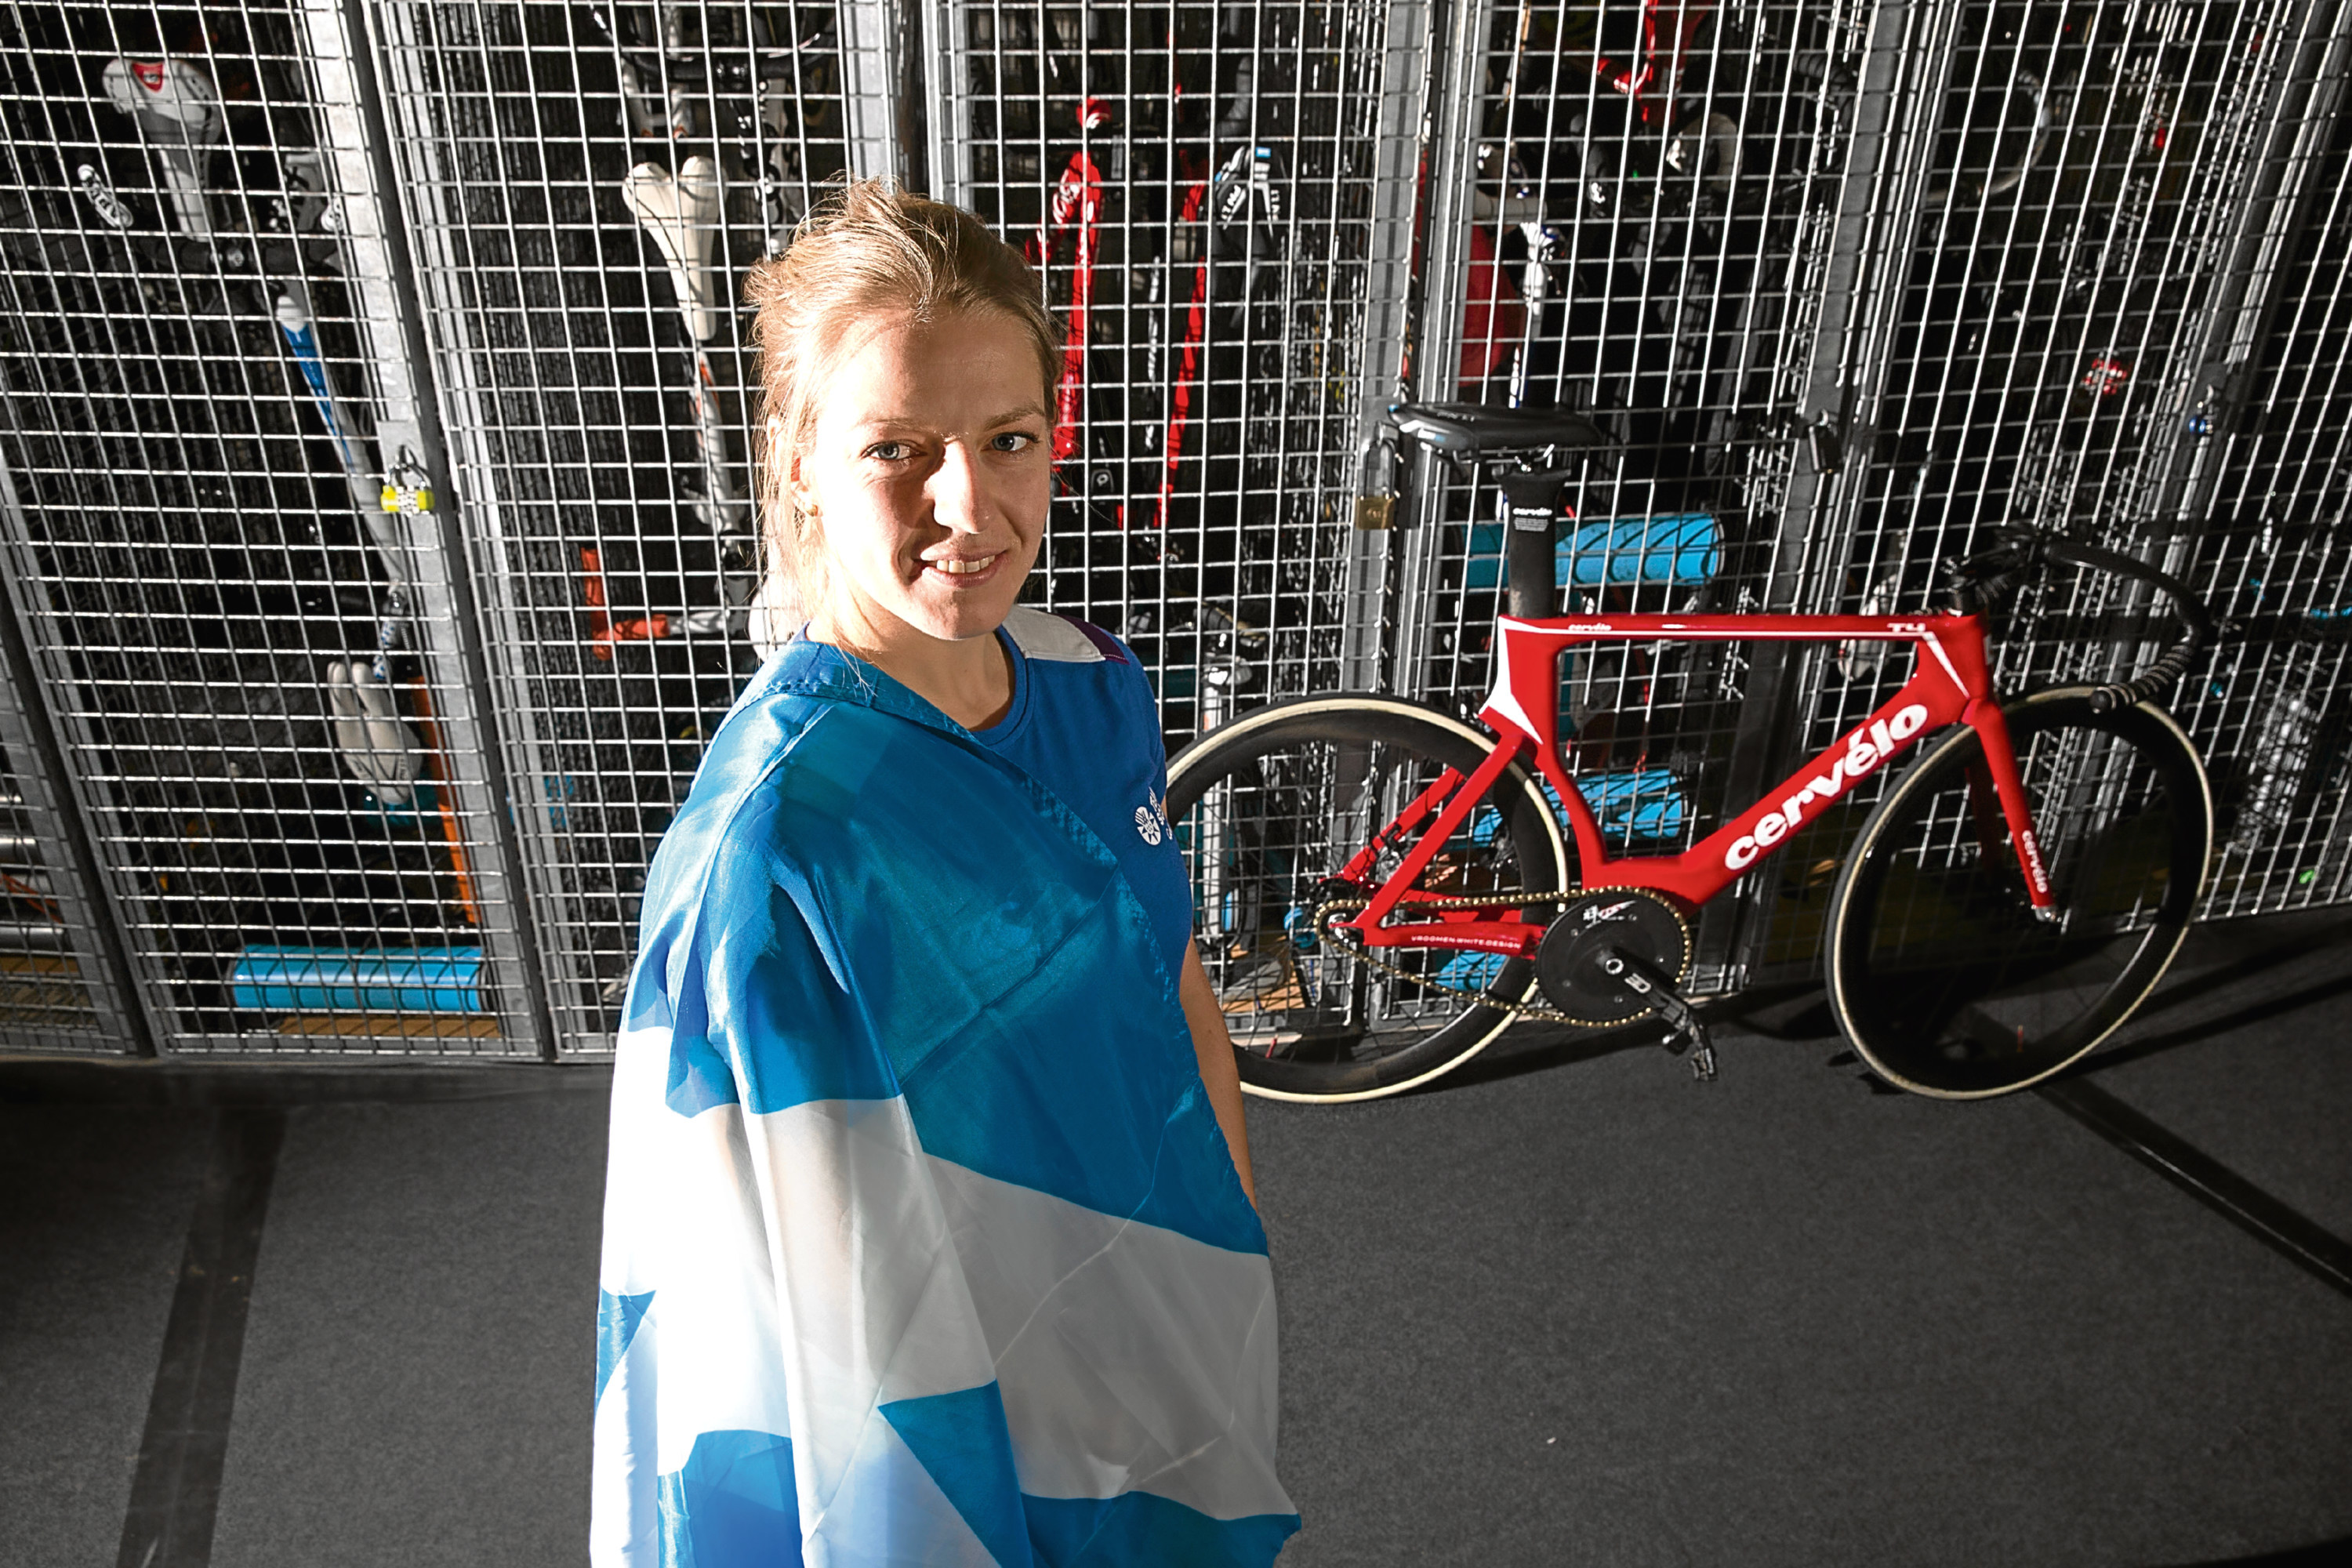 Neah Evans, Team Scotland Cycling for 2018 Commonwealth Games.